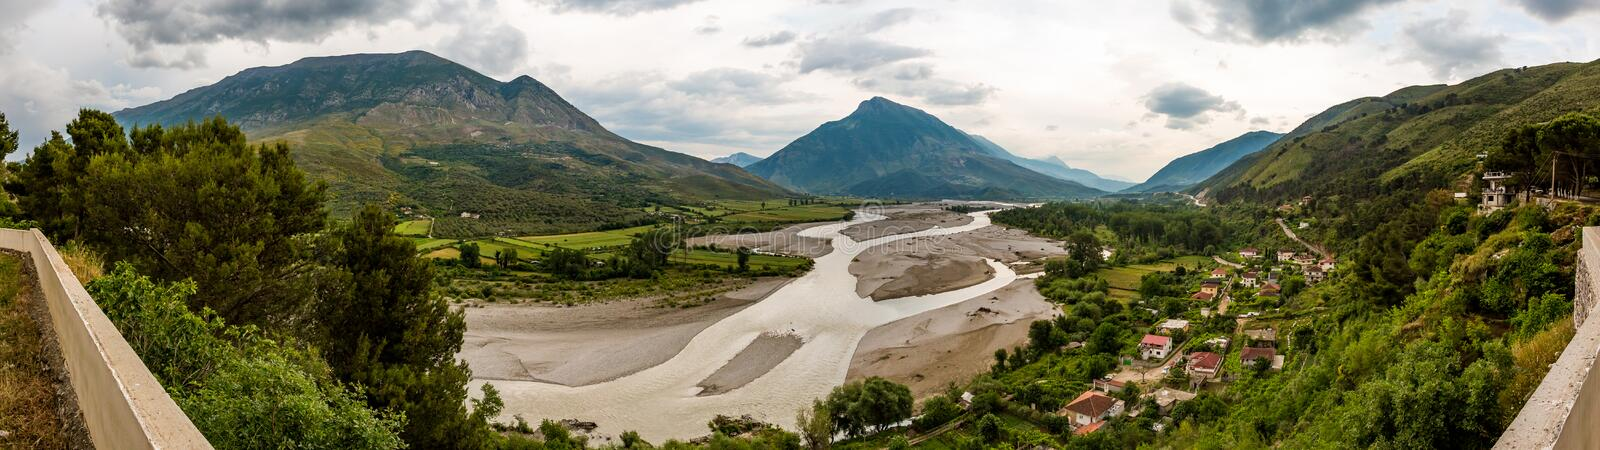 Stitched panorama of Mat river or Lumi, Albania royalty free stock photography